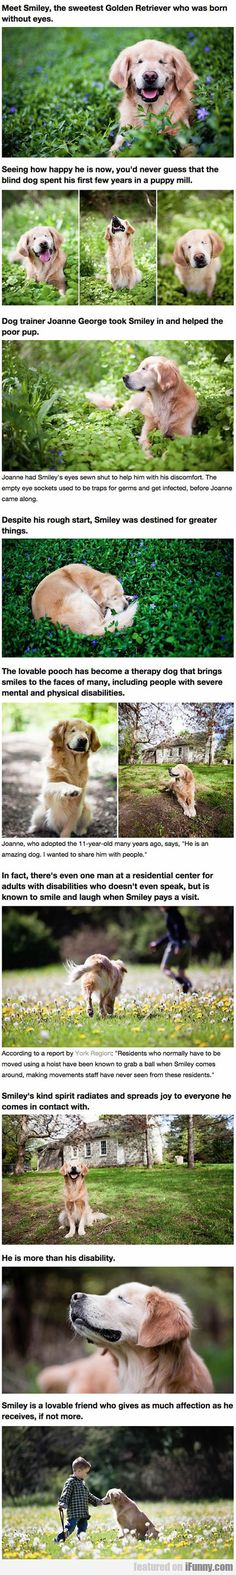 Smiley - The Golden Retriever Born Without Eyes